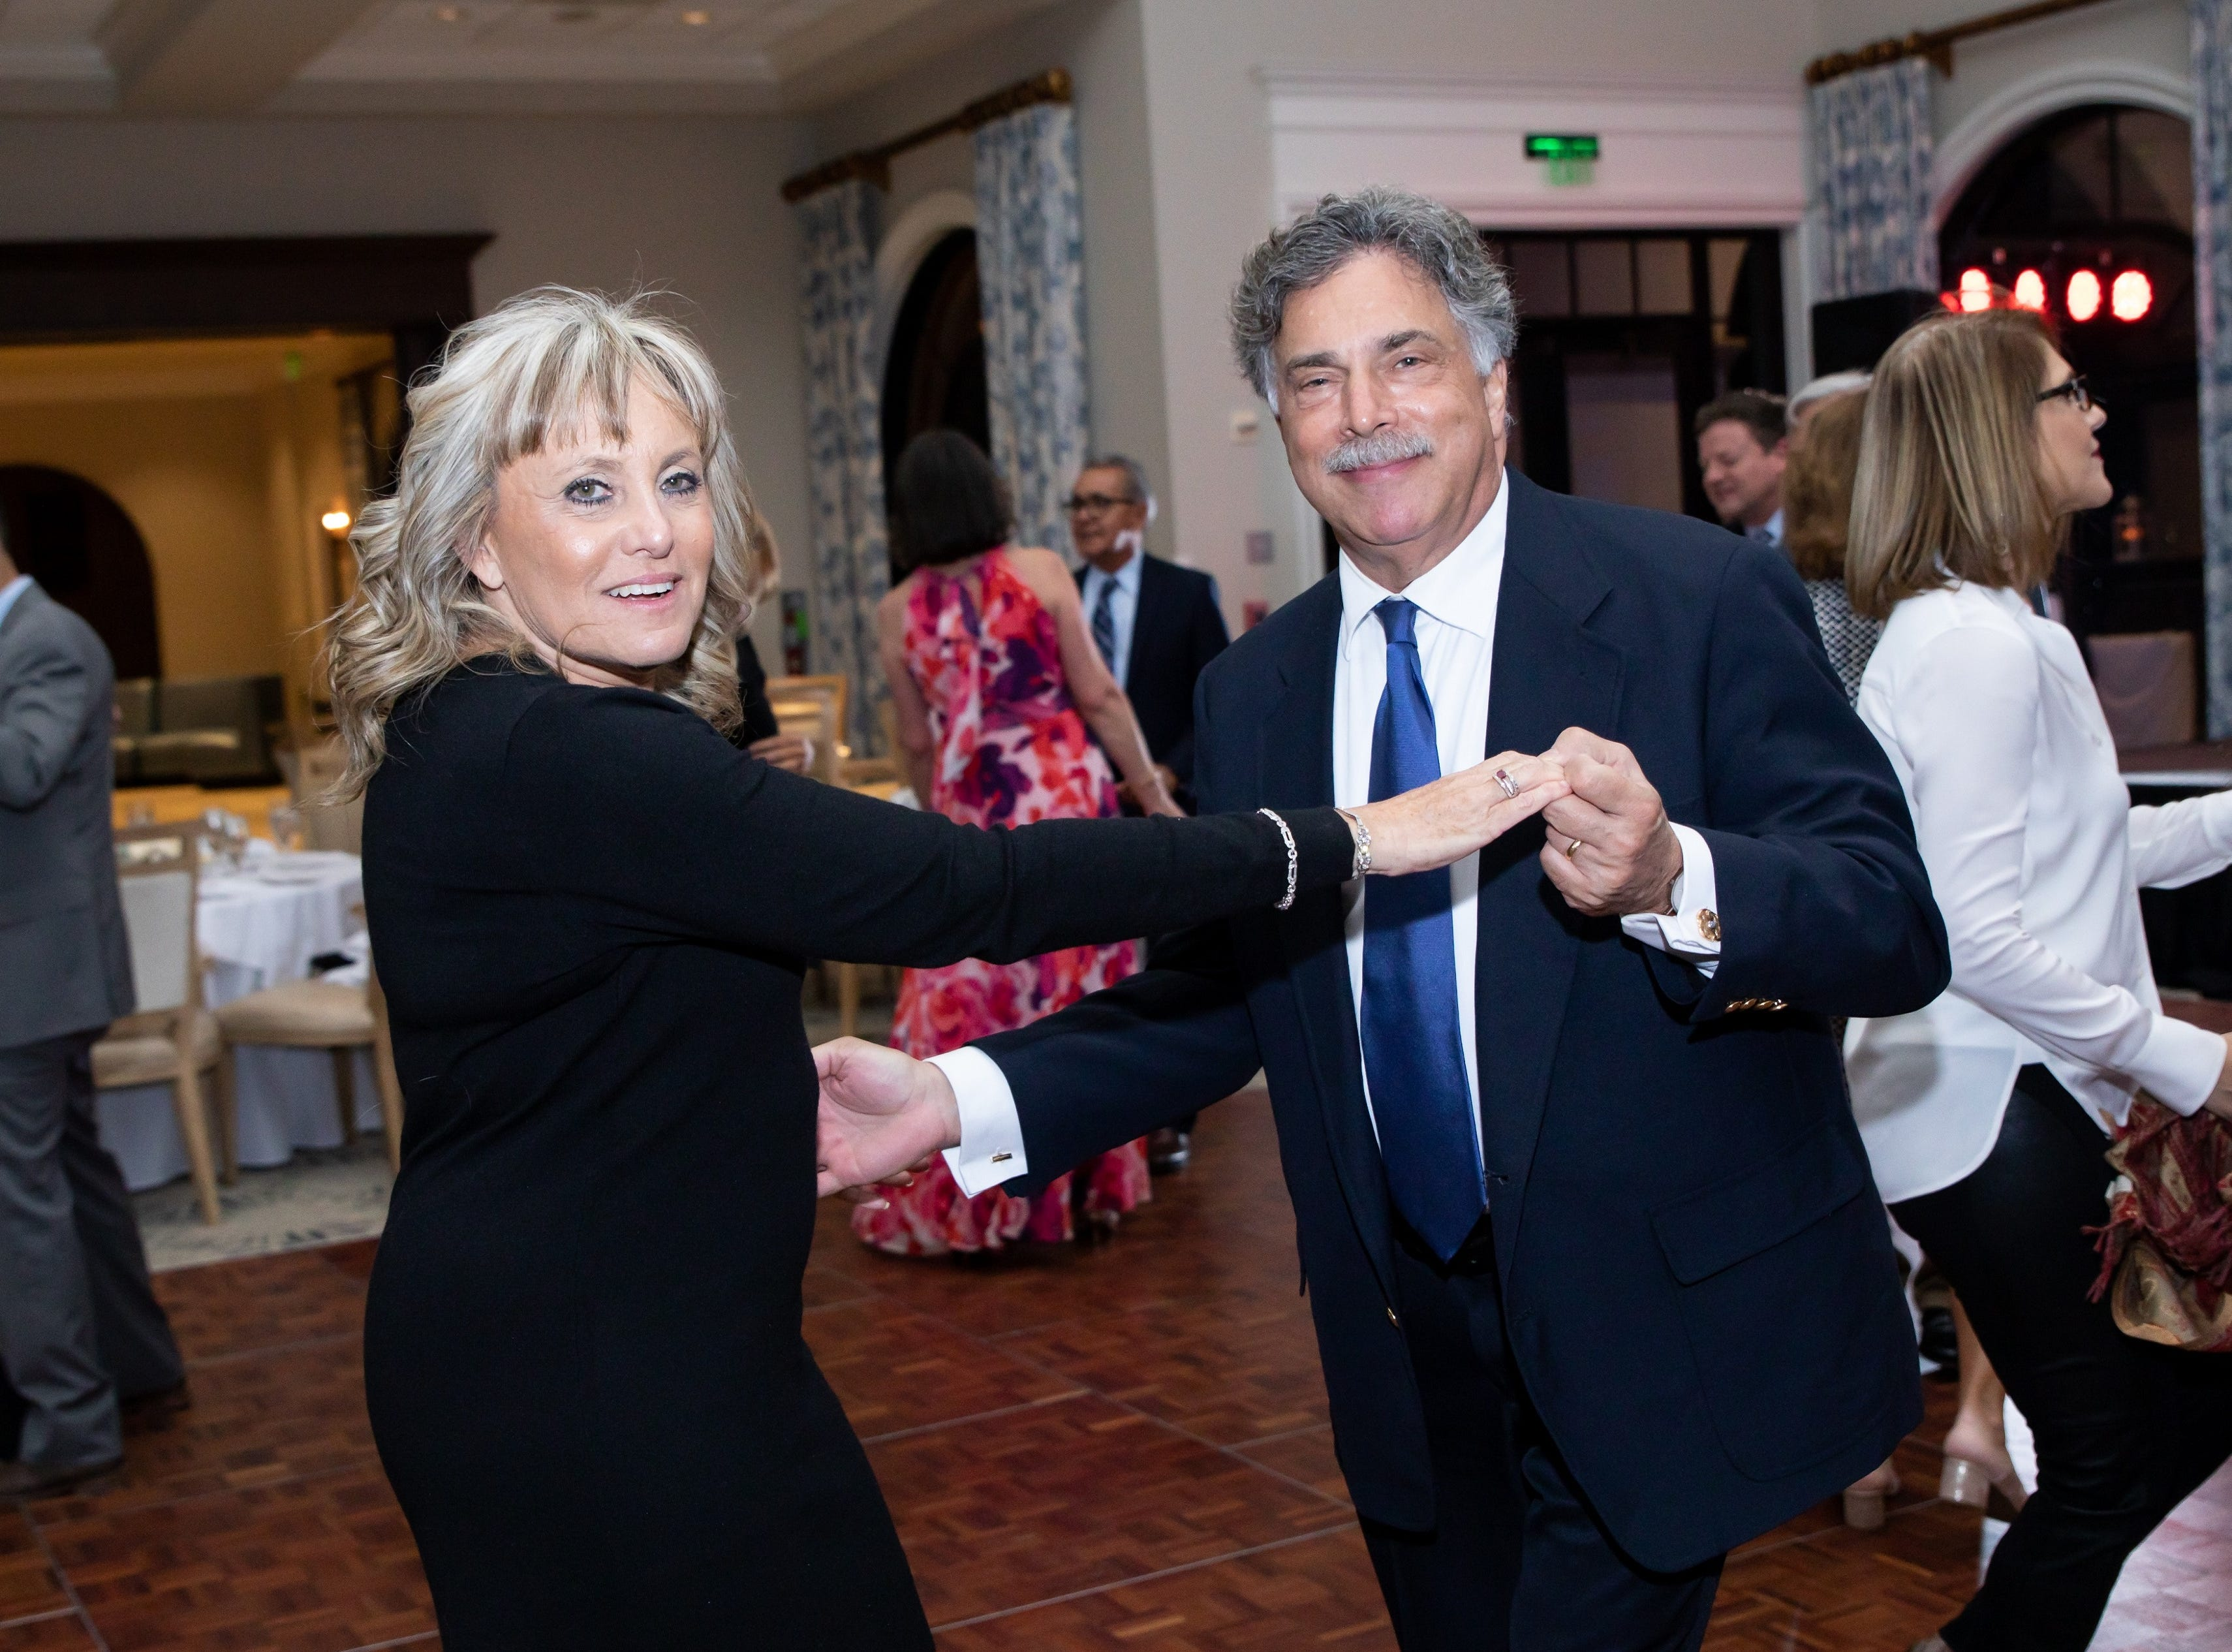 Lori and Dr. Michael Jacobs share a dance at the Jupiter Medical Center's 40th anniversary celebration at Frenchman's Reserve in Palm Beach Gardens.